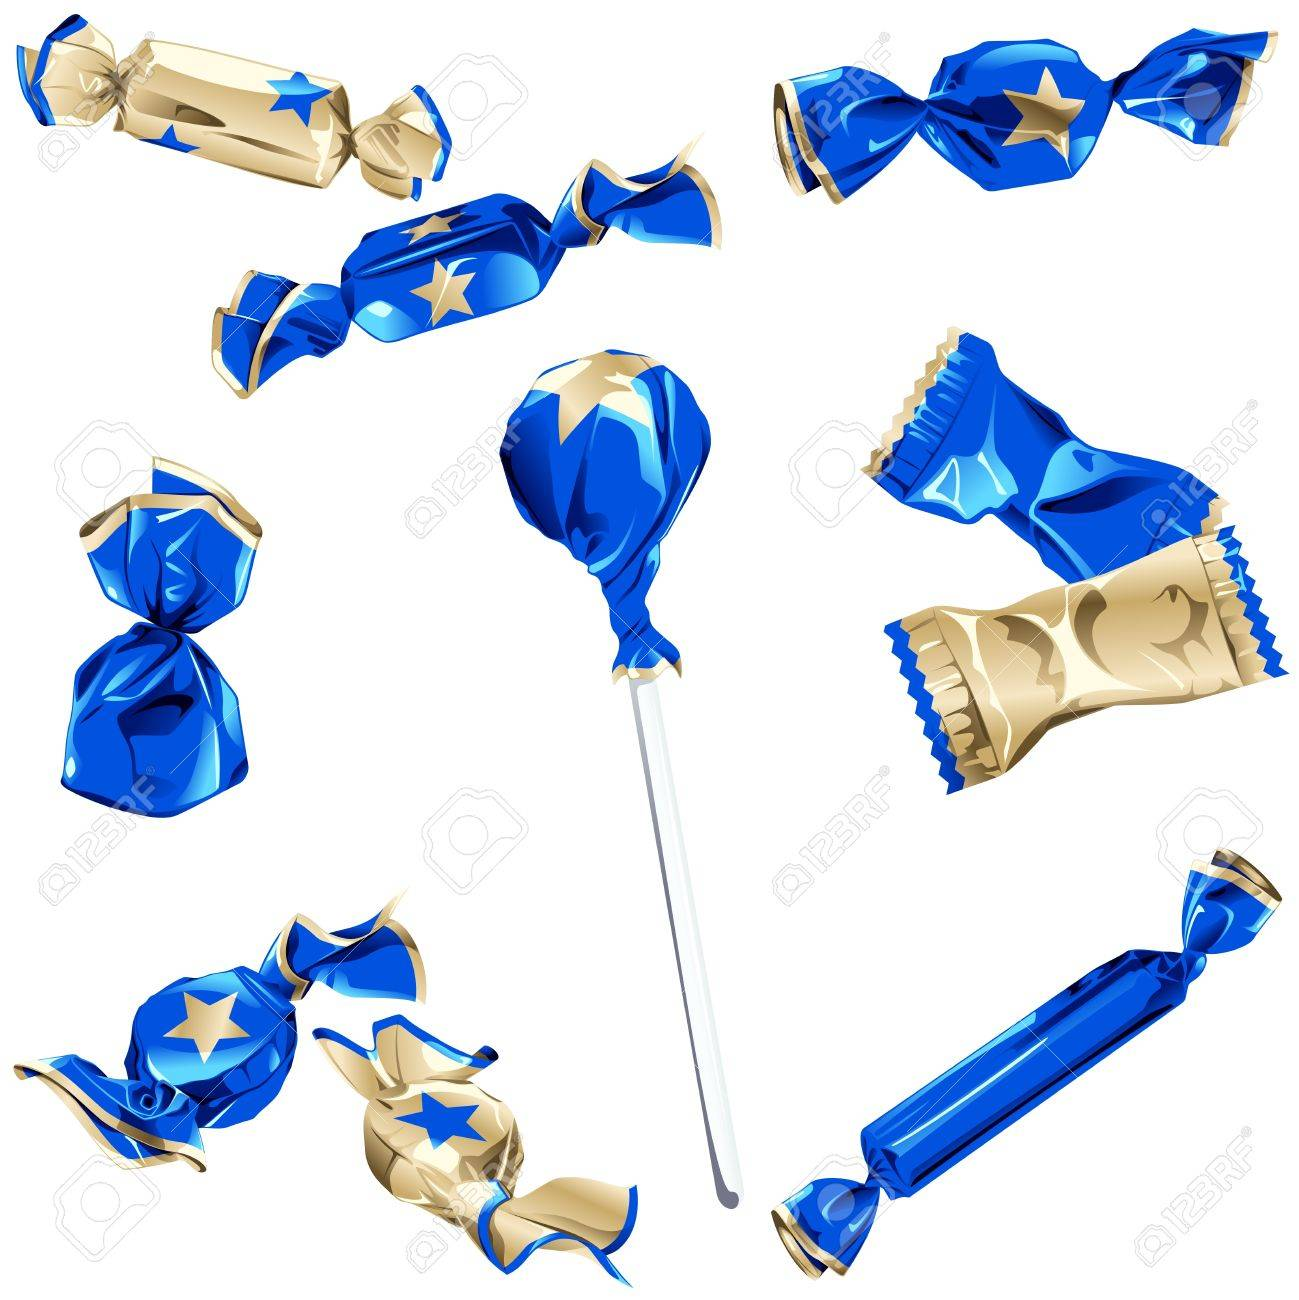 Set Of Different Kinds Of Candy In Blue And Gold Wrappers With ...